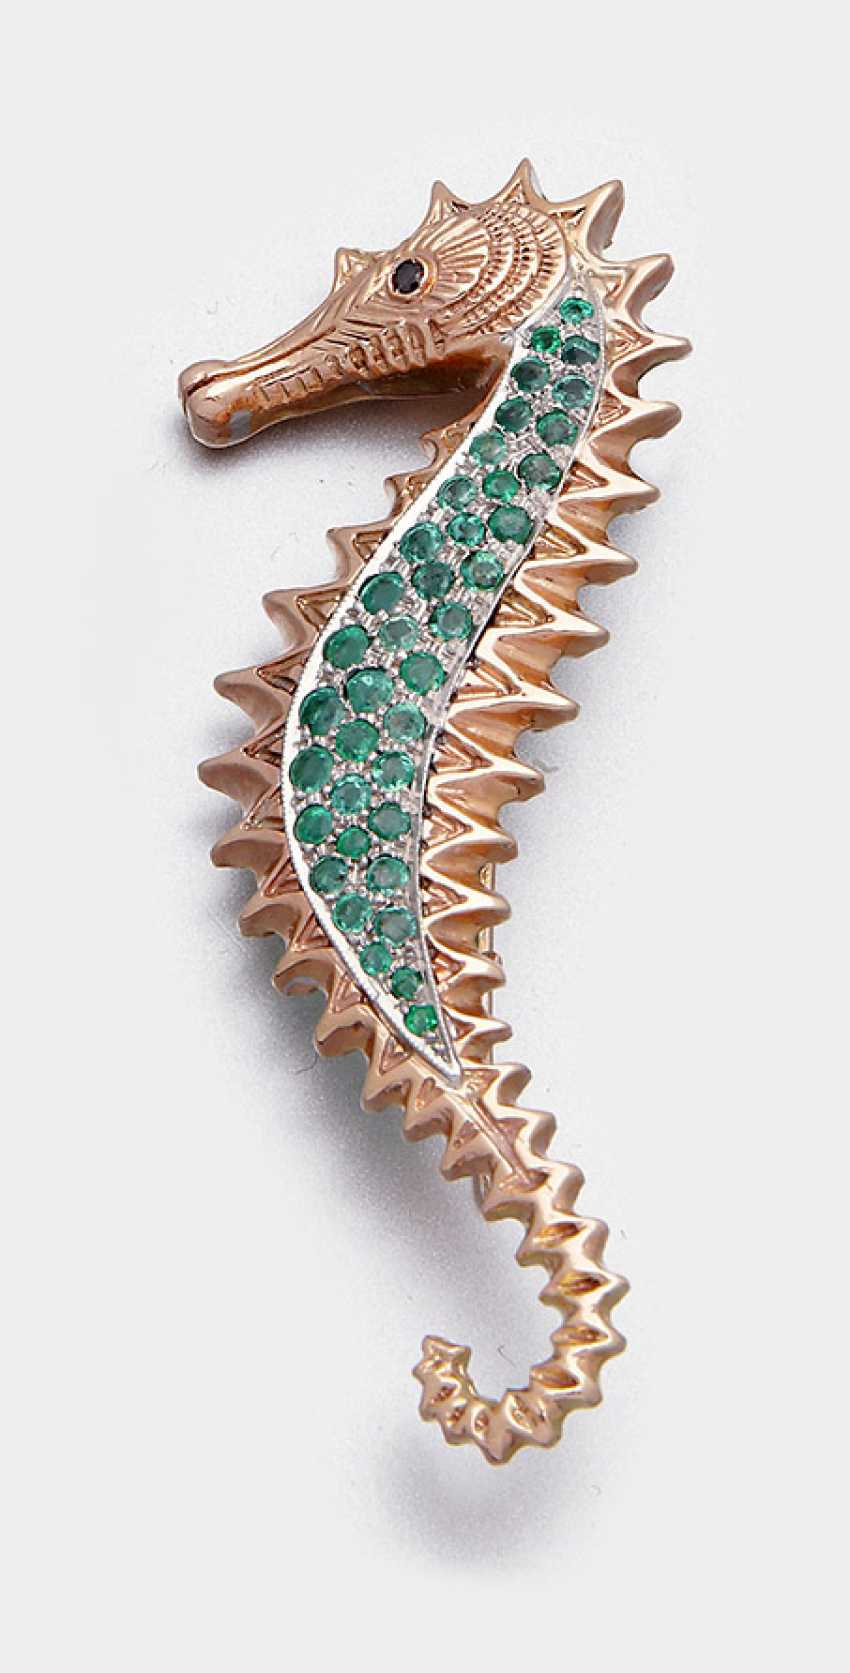 Seahorse brooch with emeralds - photo 1